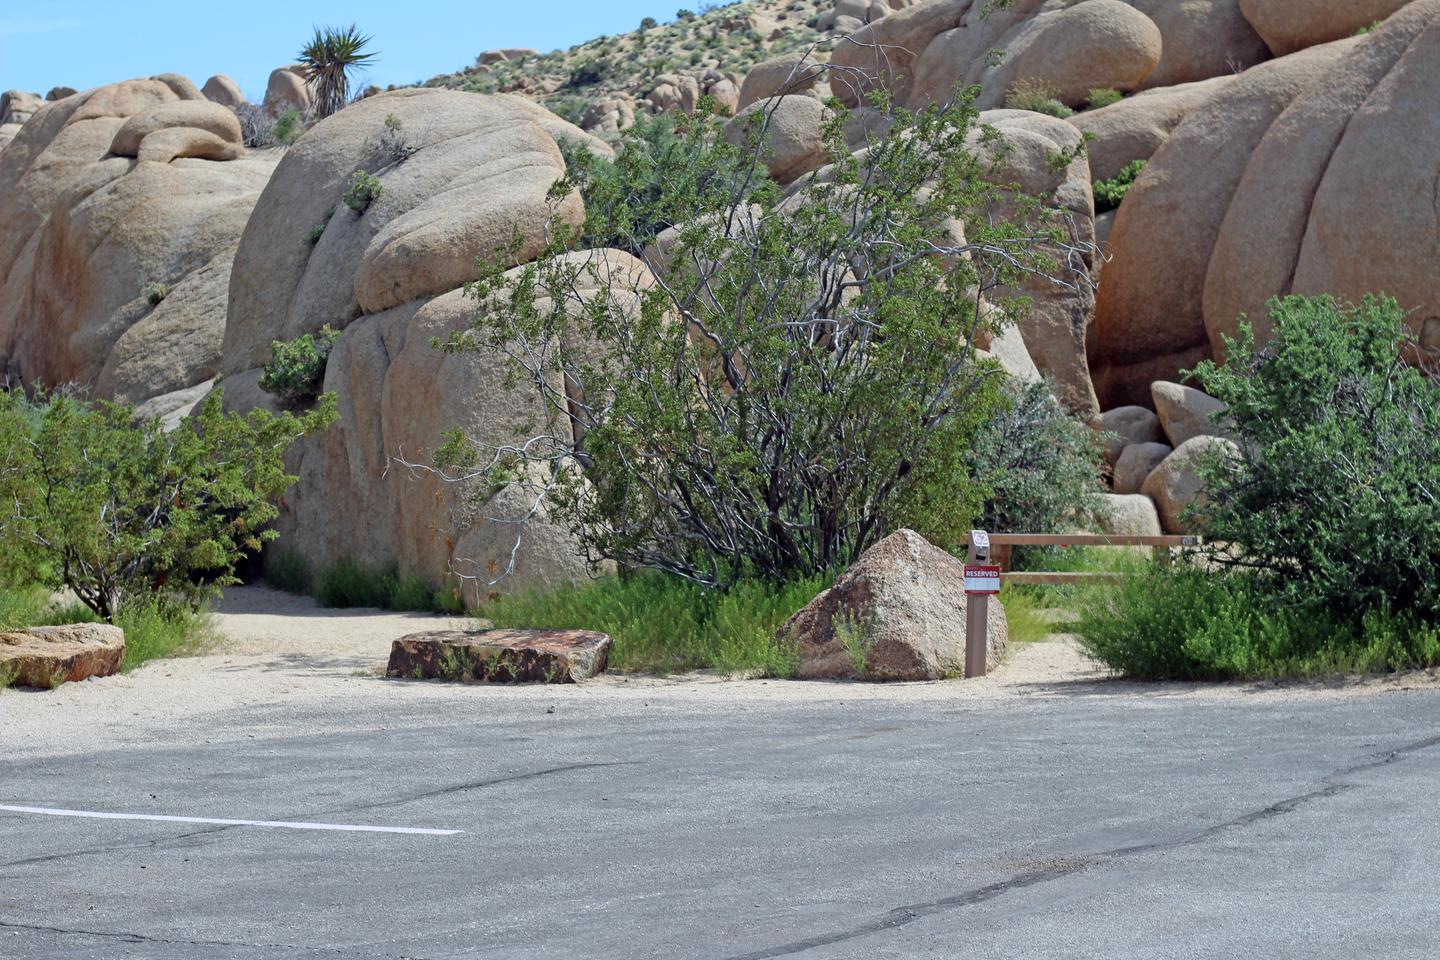 Parking for campsite. Picnic table surrounded by boulders and green plants.